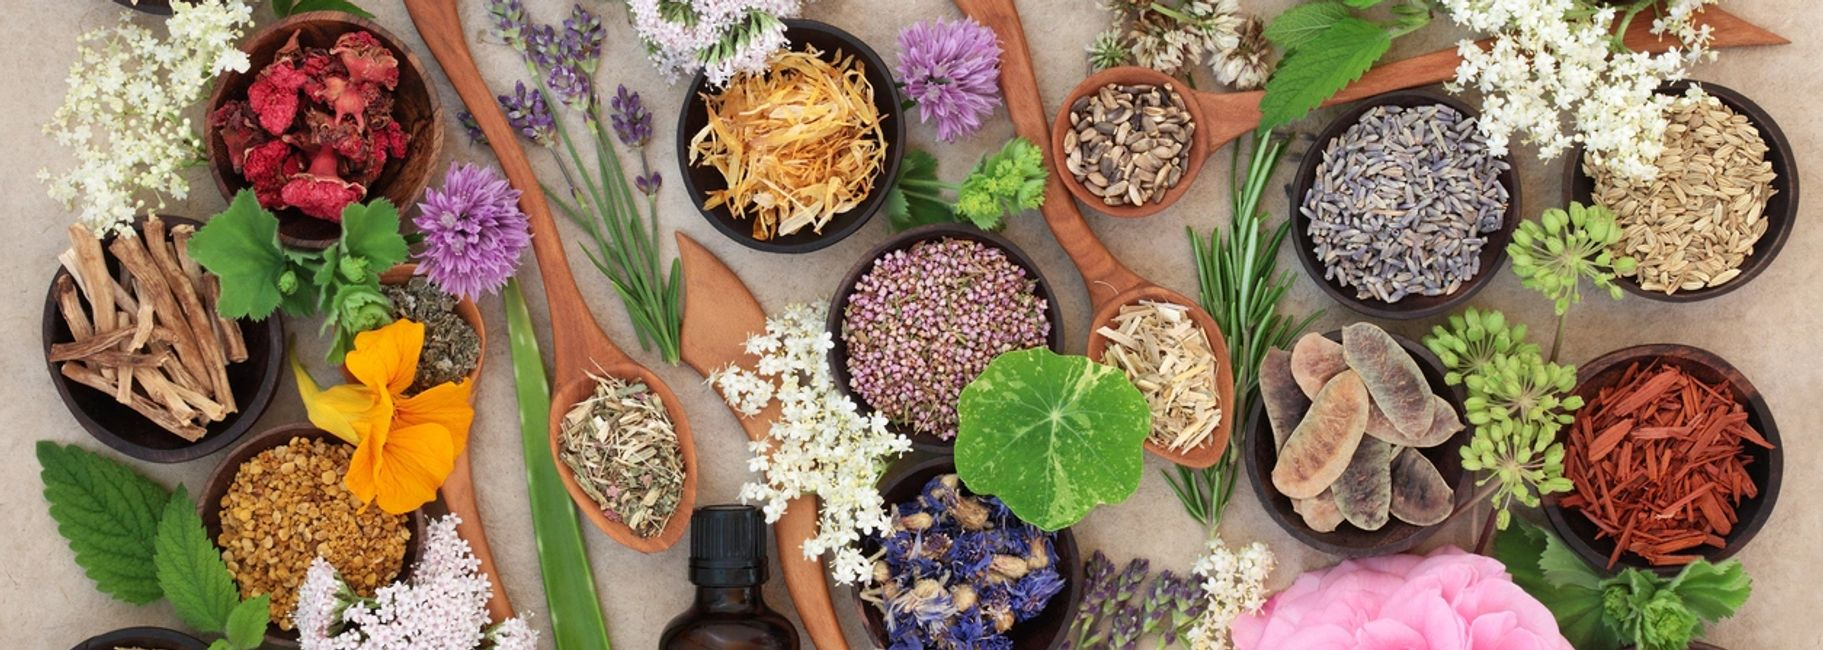 essential oil blends of different flowers